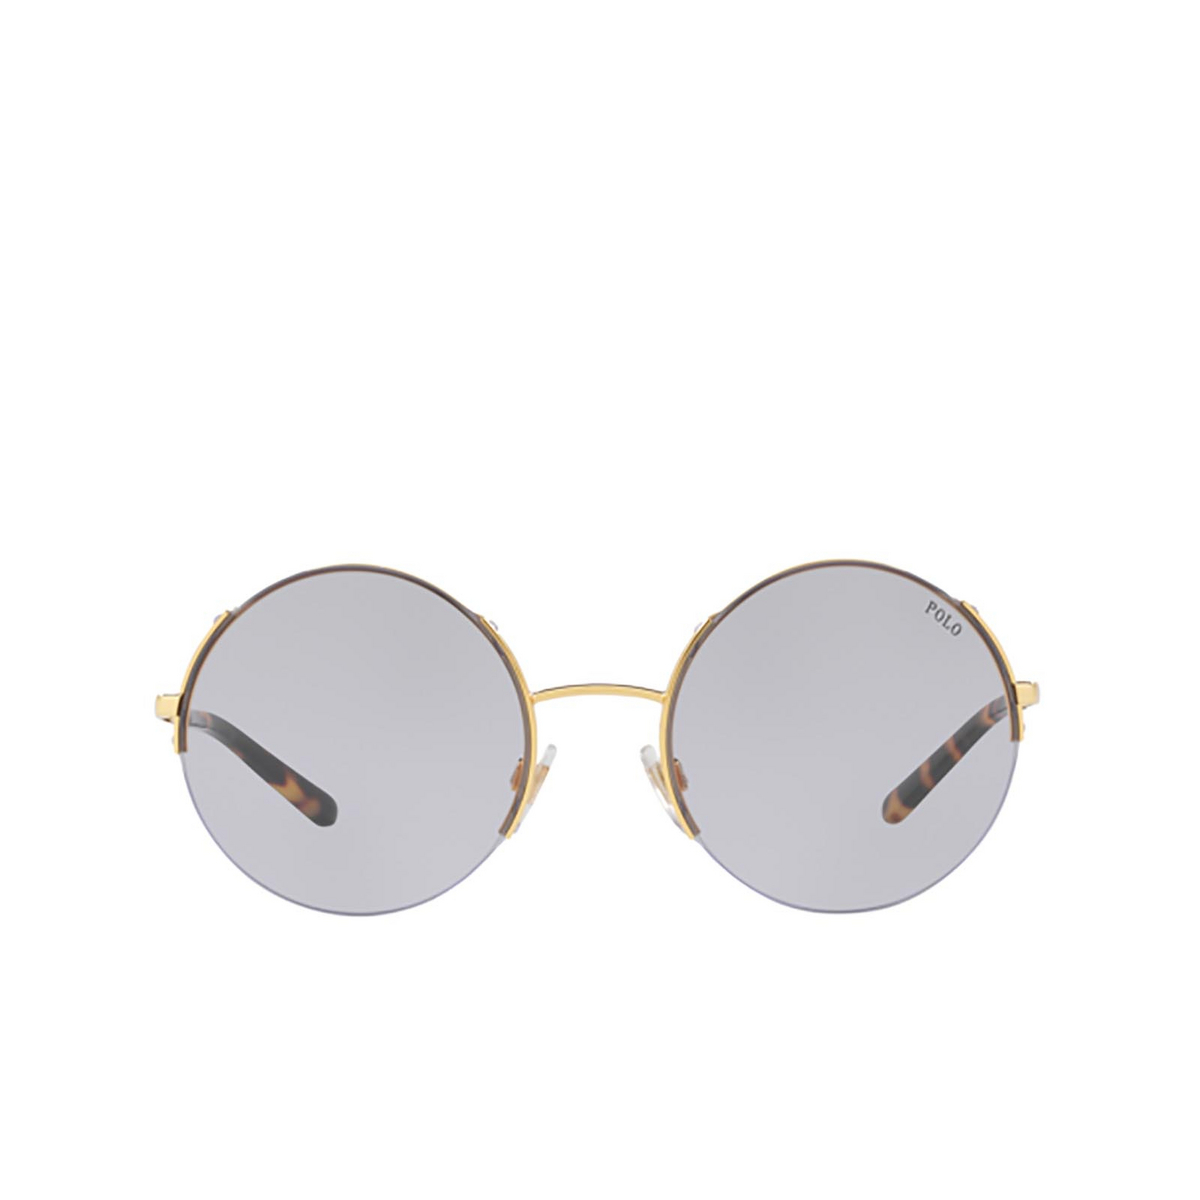 Polo Ralph Lauren® Round Sunglasses: PH3120 color Gold 90041A - front view.